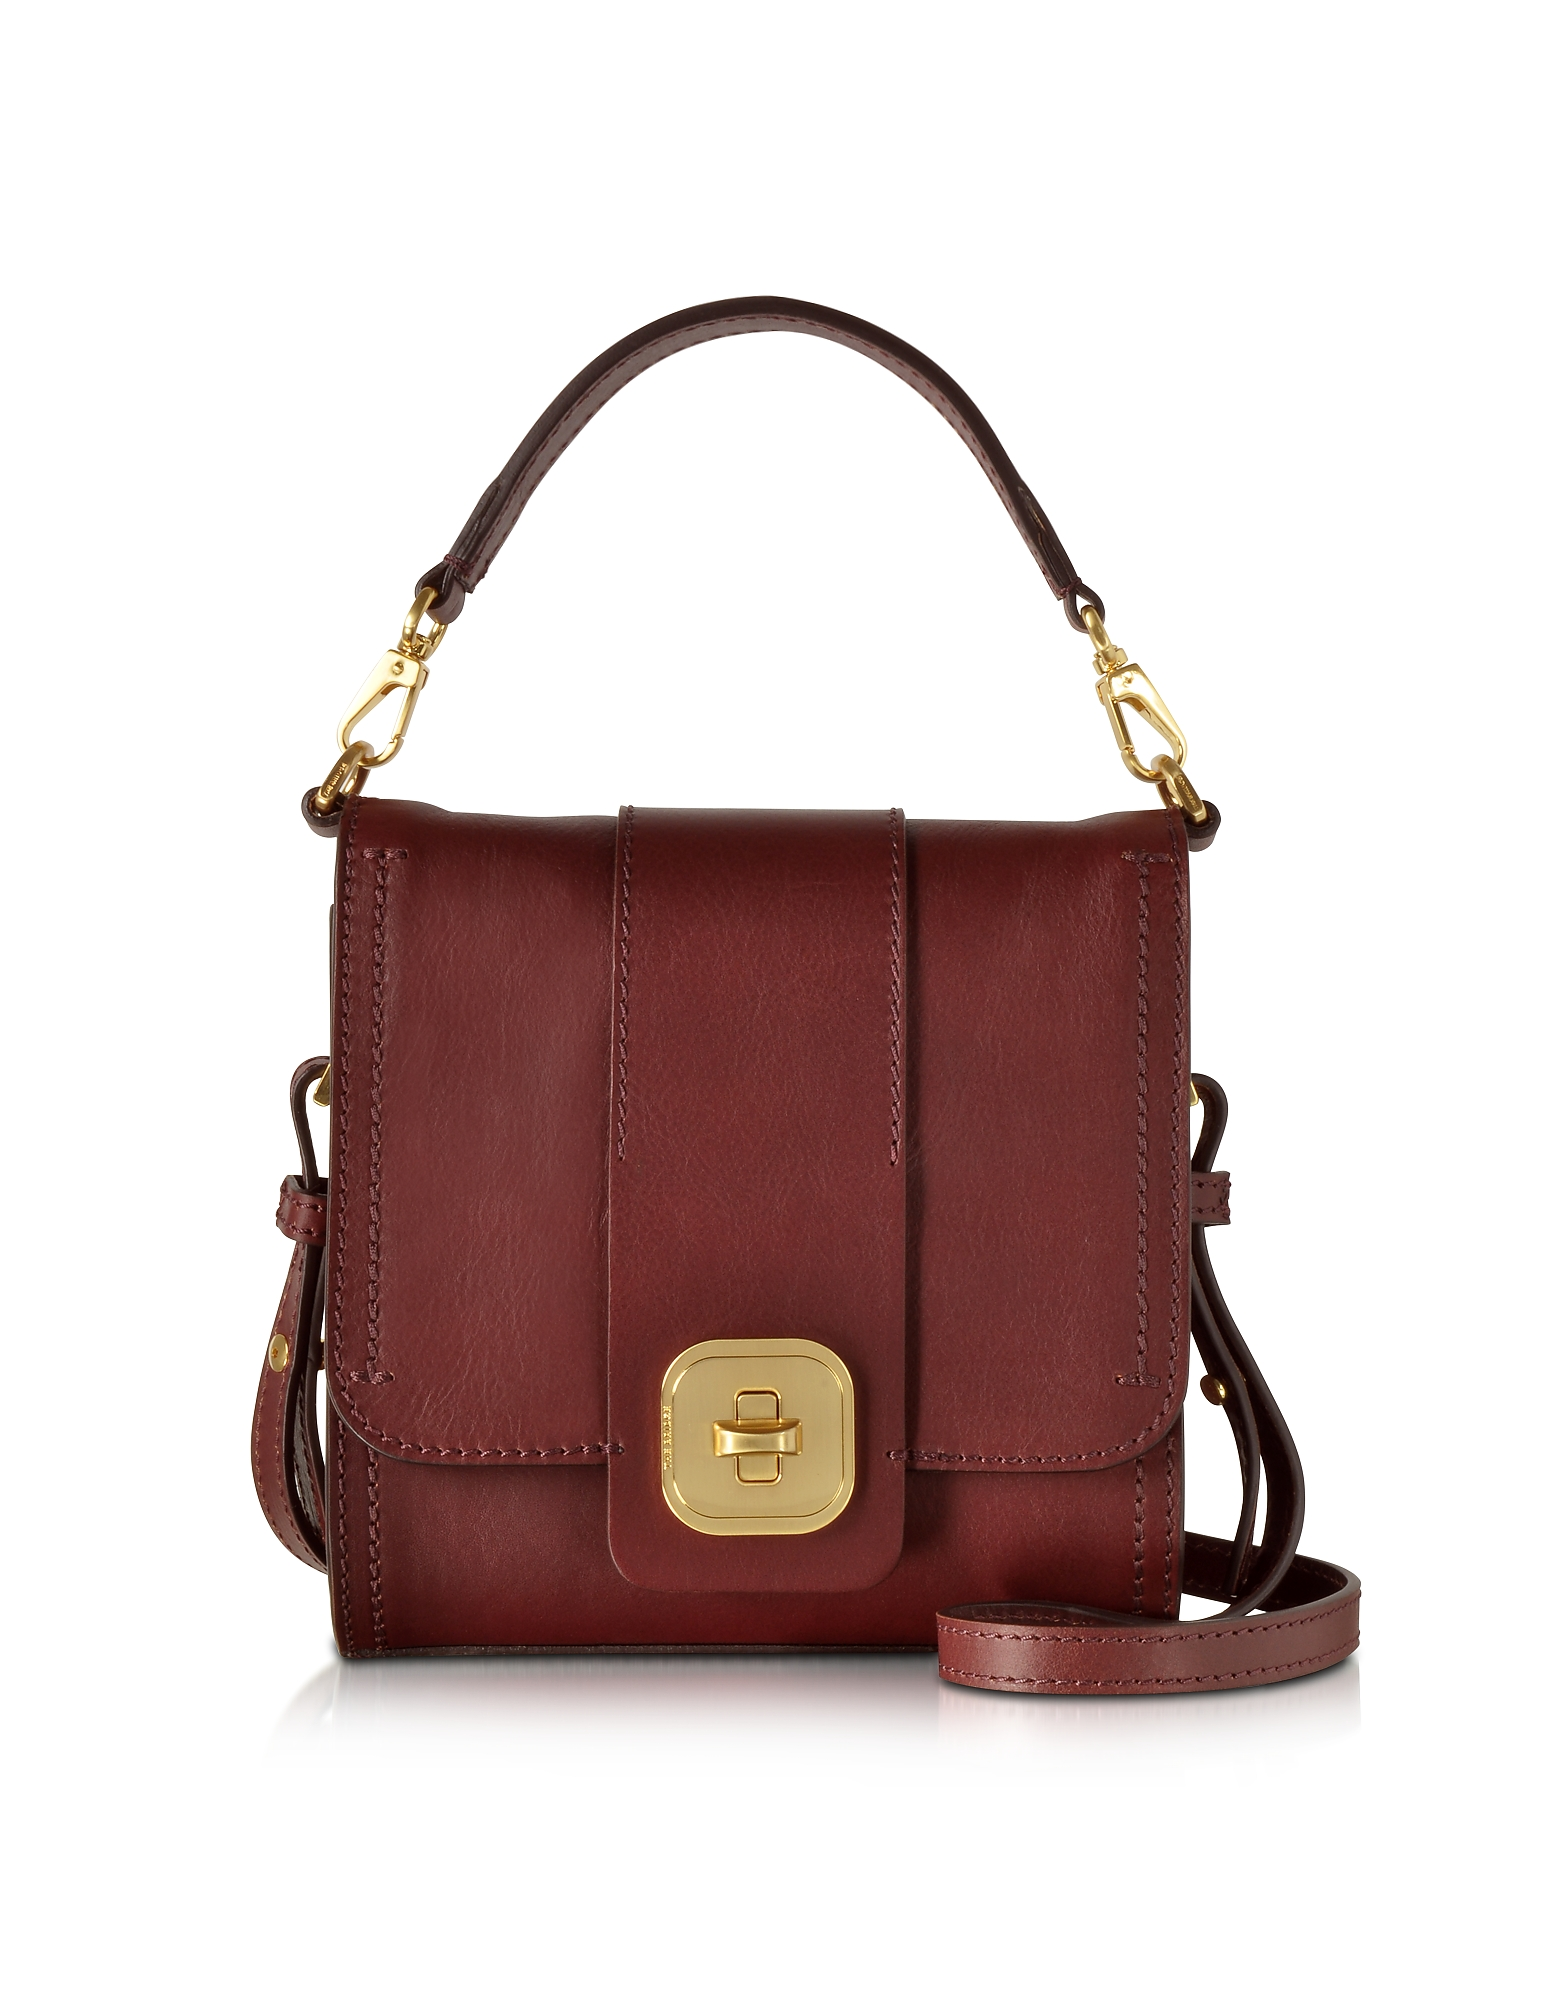 0e73f6d63f4e68 Best Reviews For Leather Crossbody Handbags | Stanford Center for ...